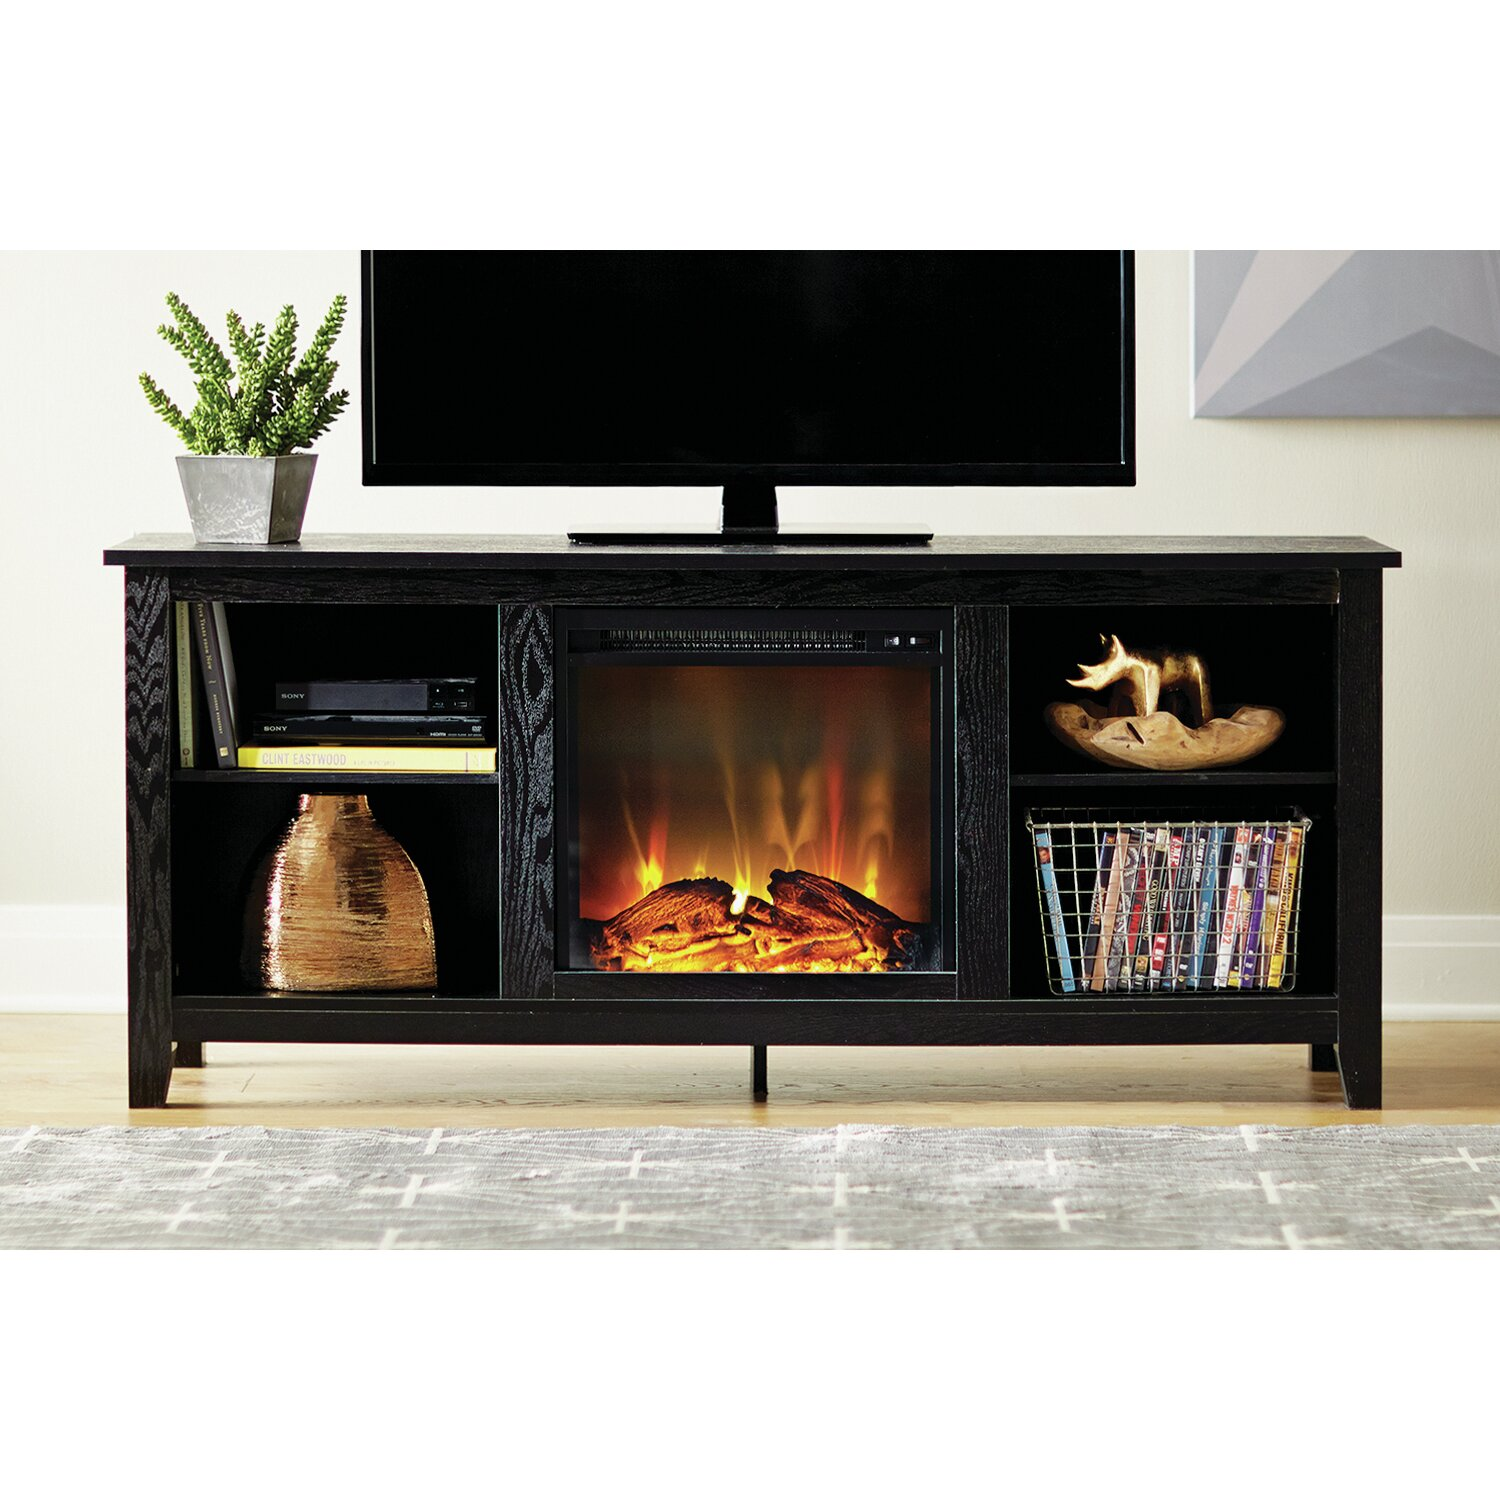 Beachcrest Home™ Griffey Media Console & Electric Fireplace - Griffey Media Console & Electric Fireplace & Reviews Joss & Main